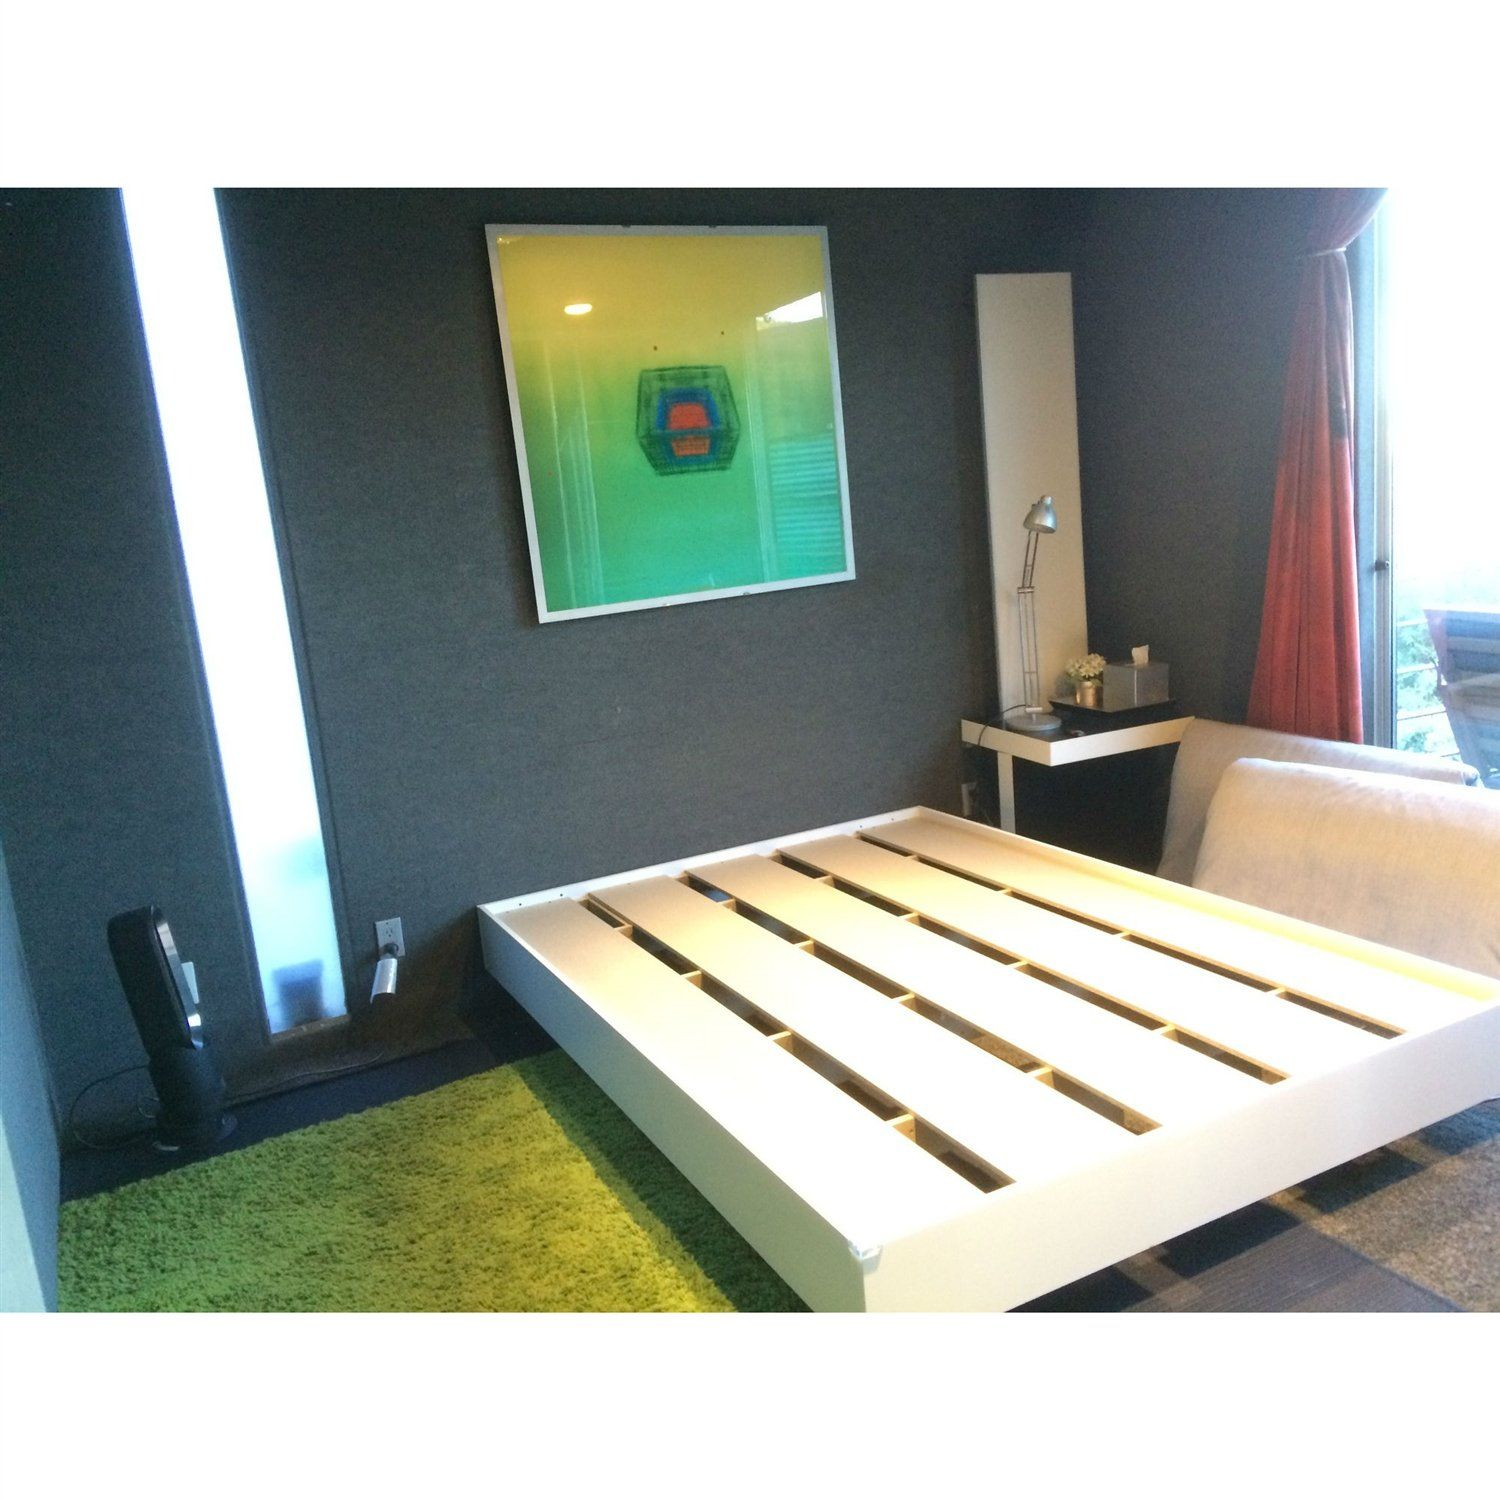 This Modern Floating Style White Platform Bed Frame in